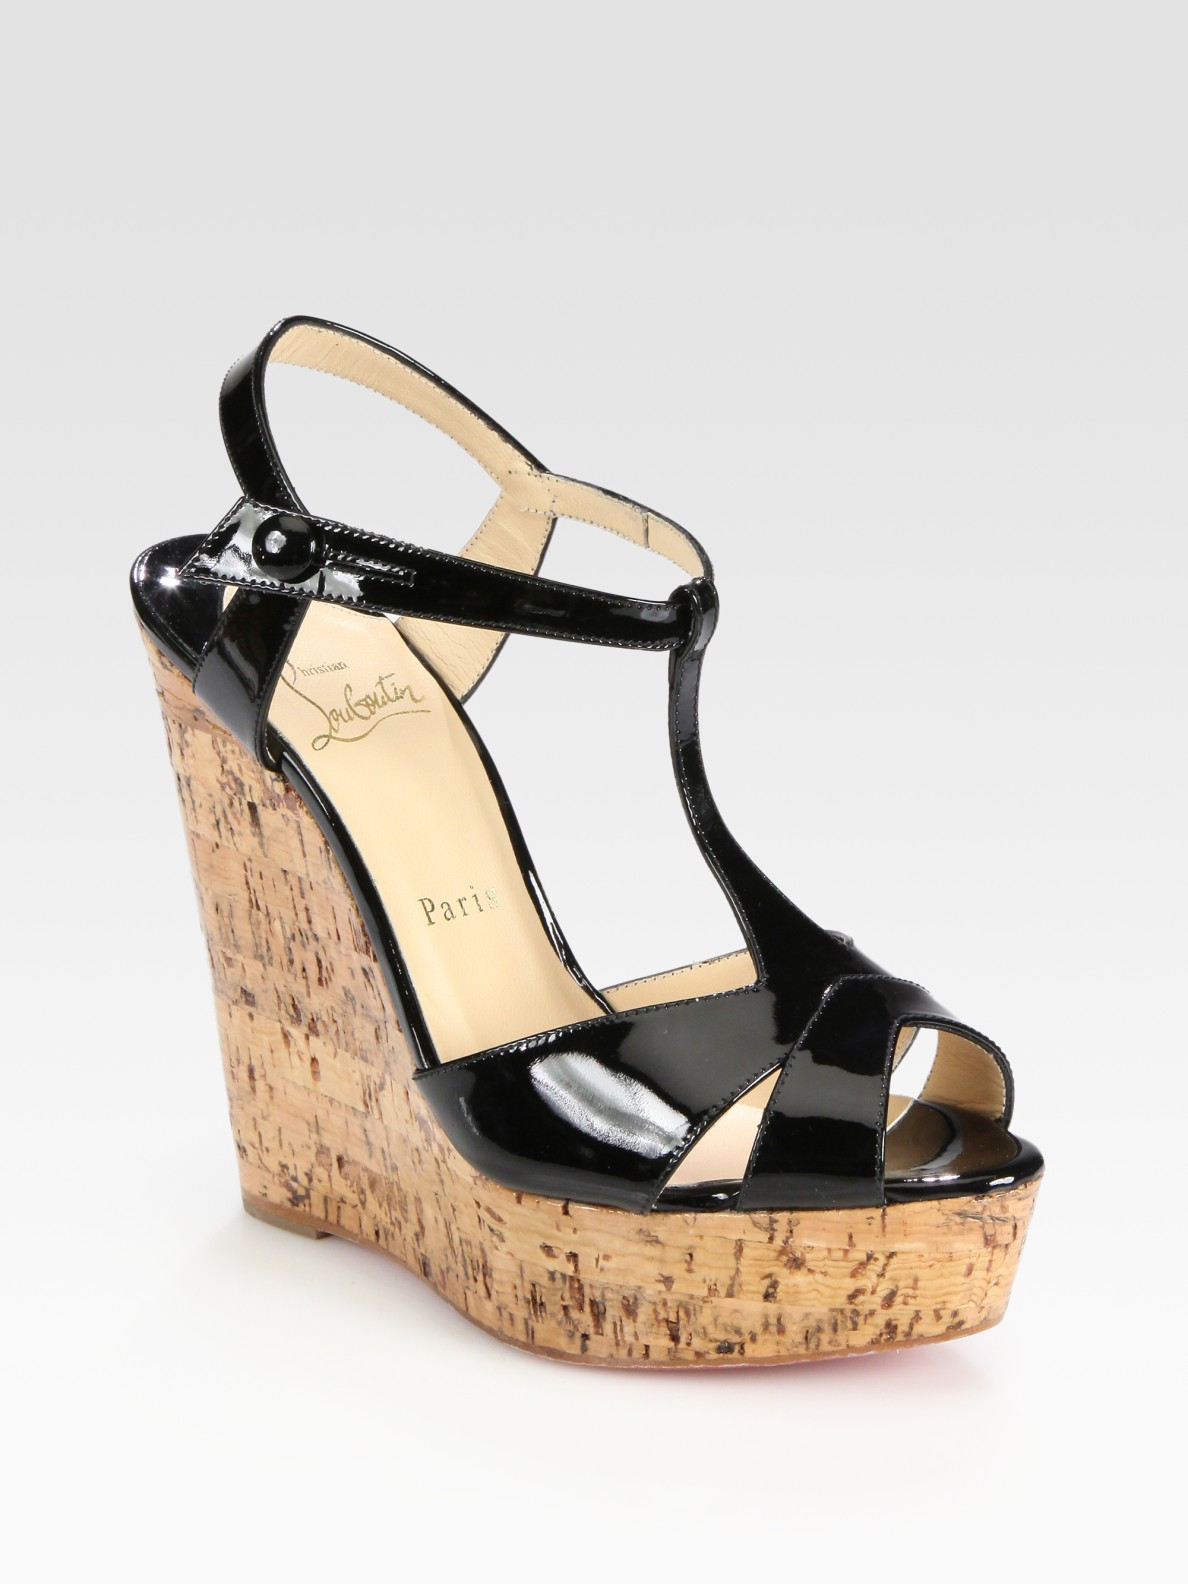 christian louboutin wedge sandals Black canvas cross-over straps ...